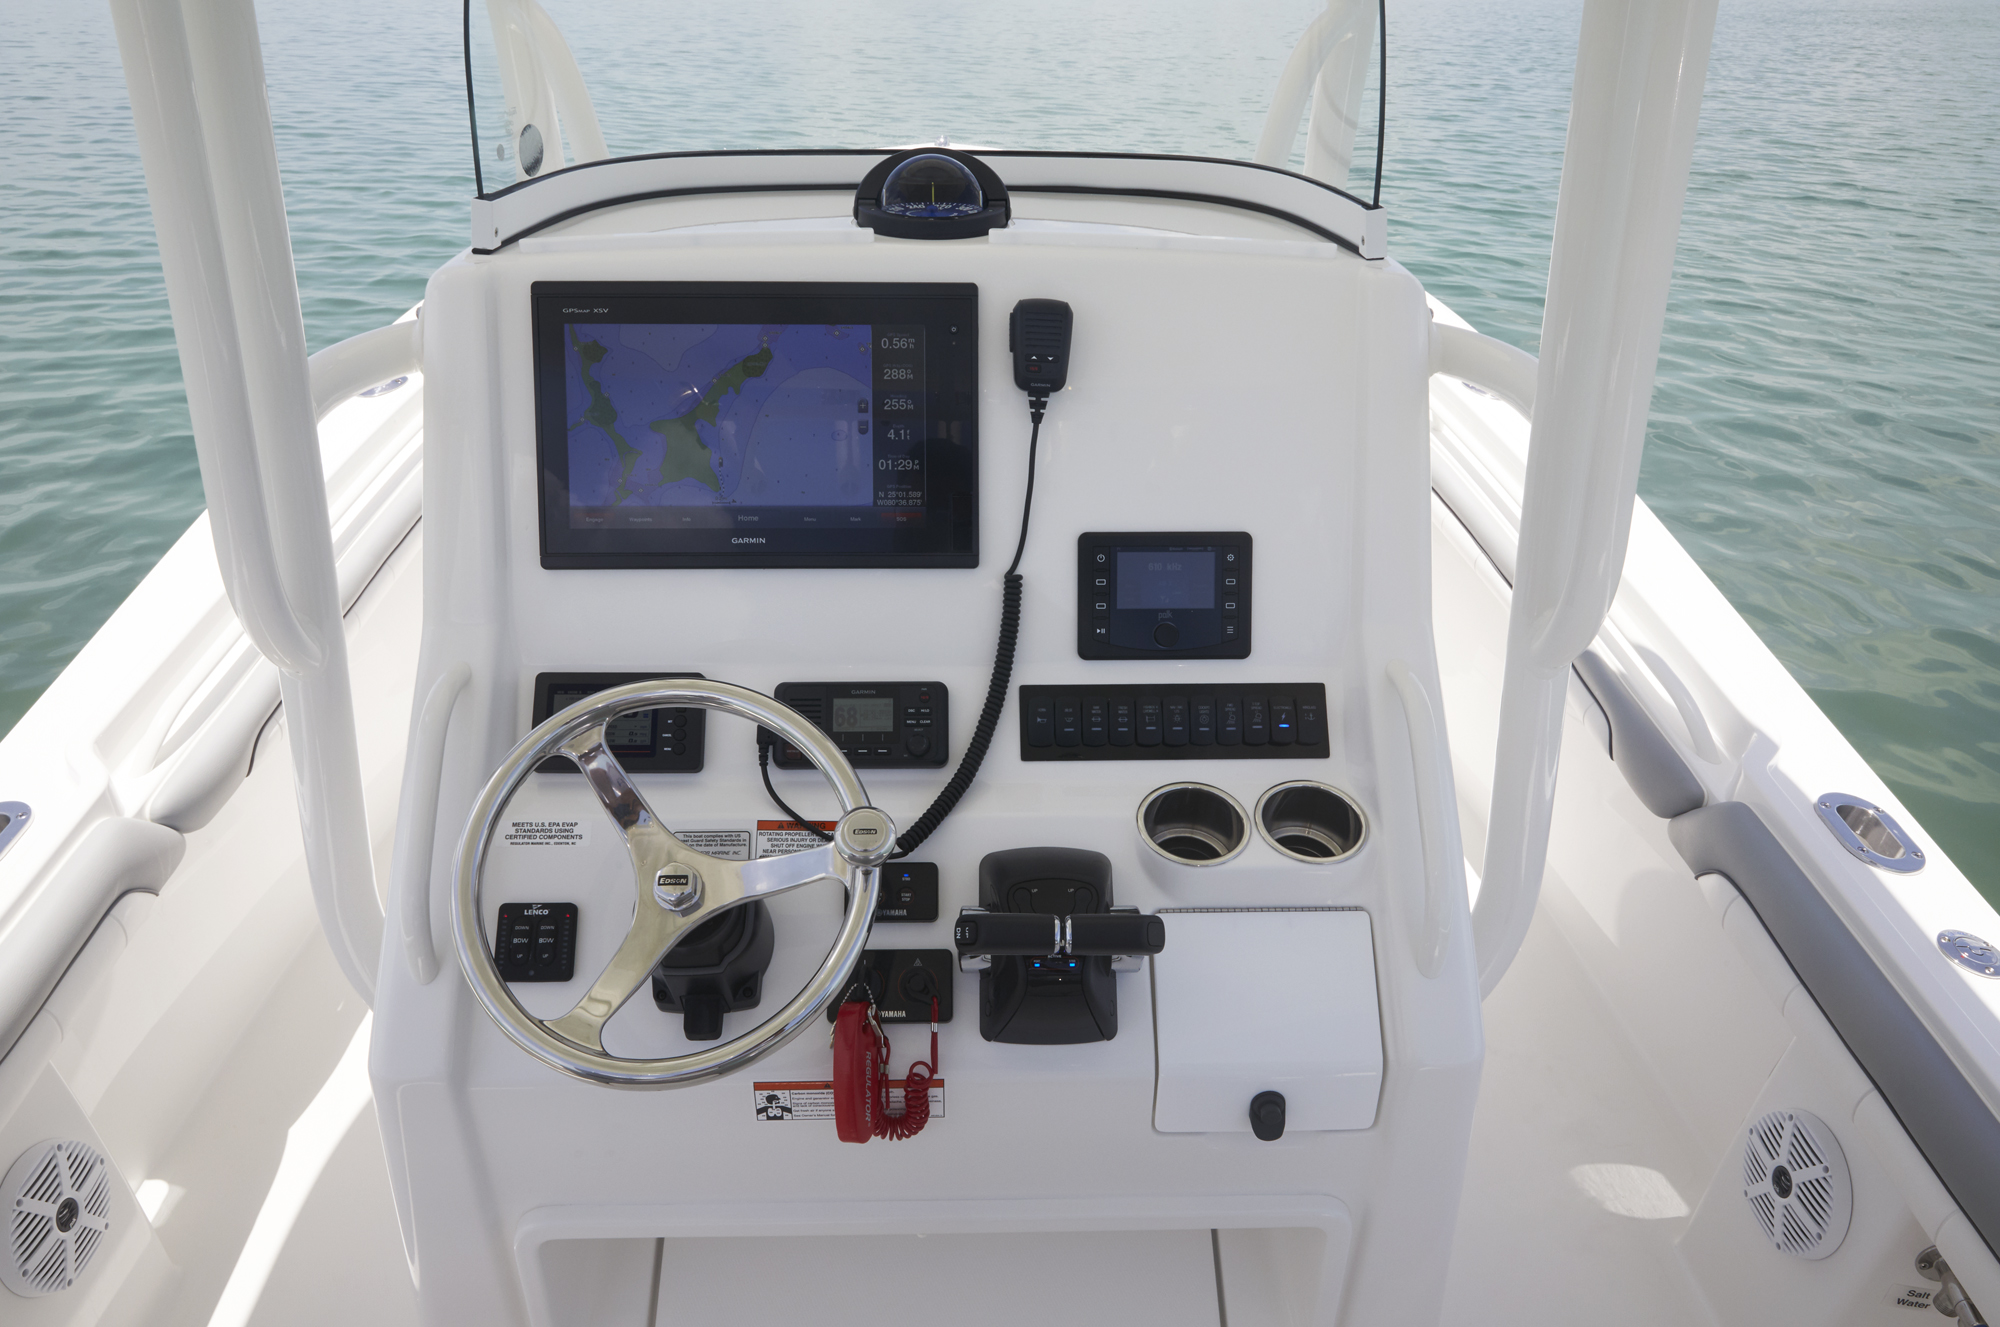 Regulator 23 Marine Boats Center Console Wiring Diagram Helm With Garmin Electronics